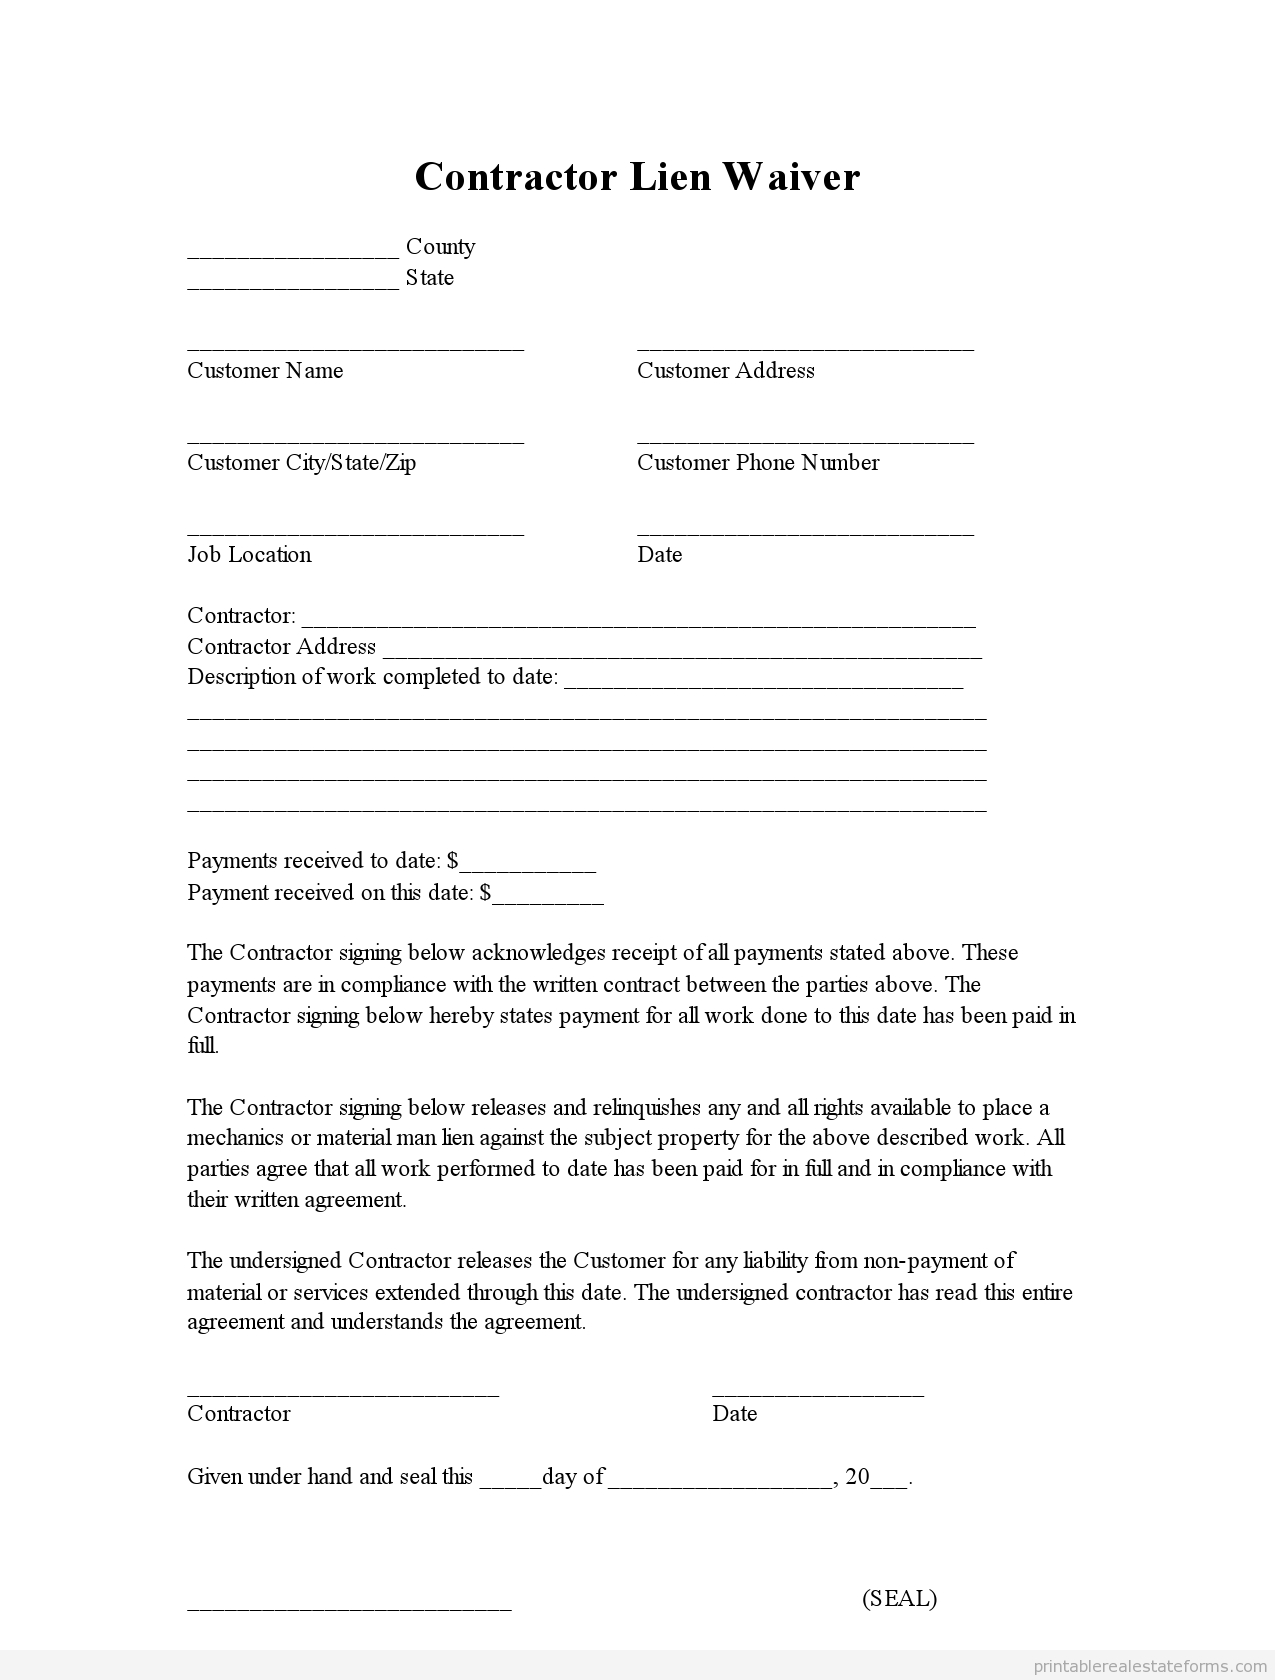 Lien Letter Template - Sample Printable Contractor Lien Waiver form